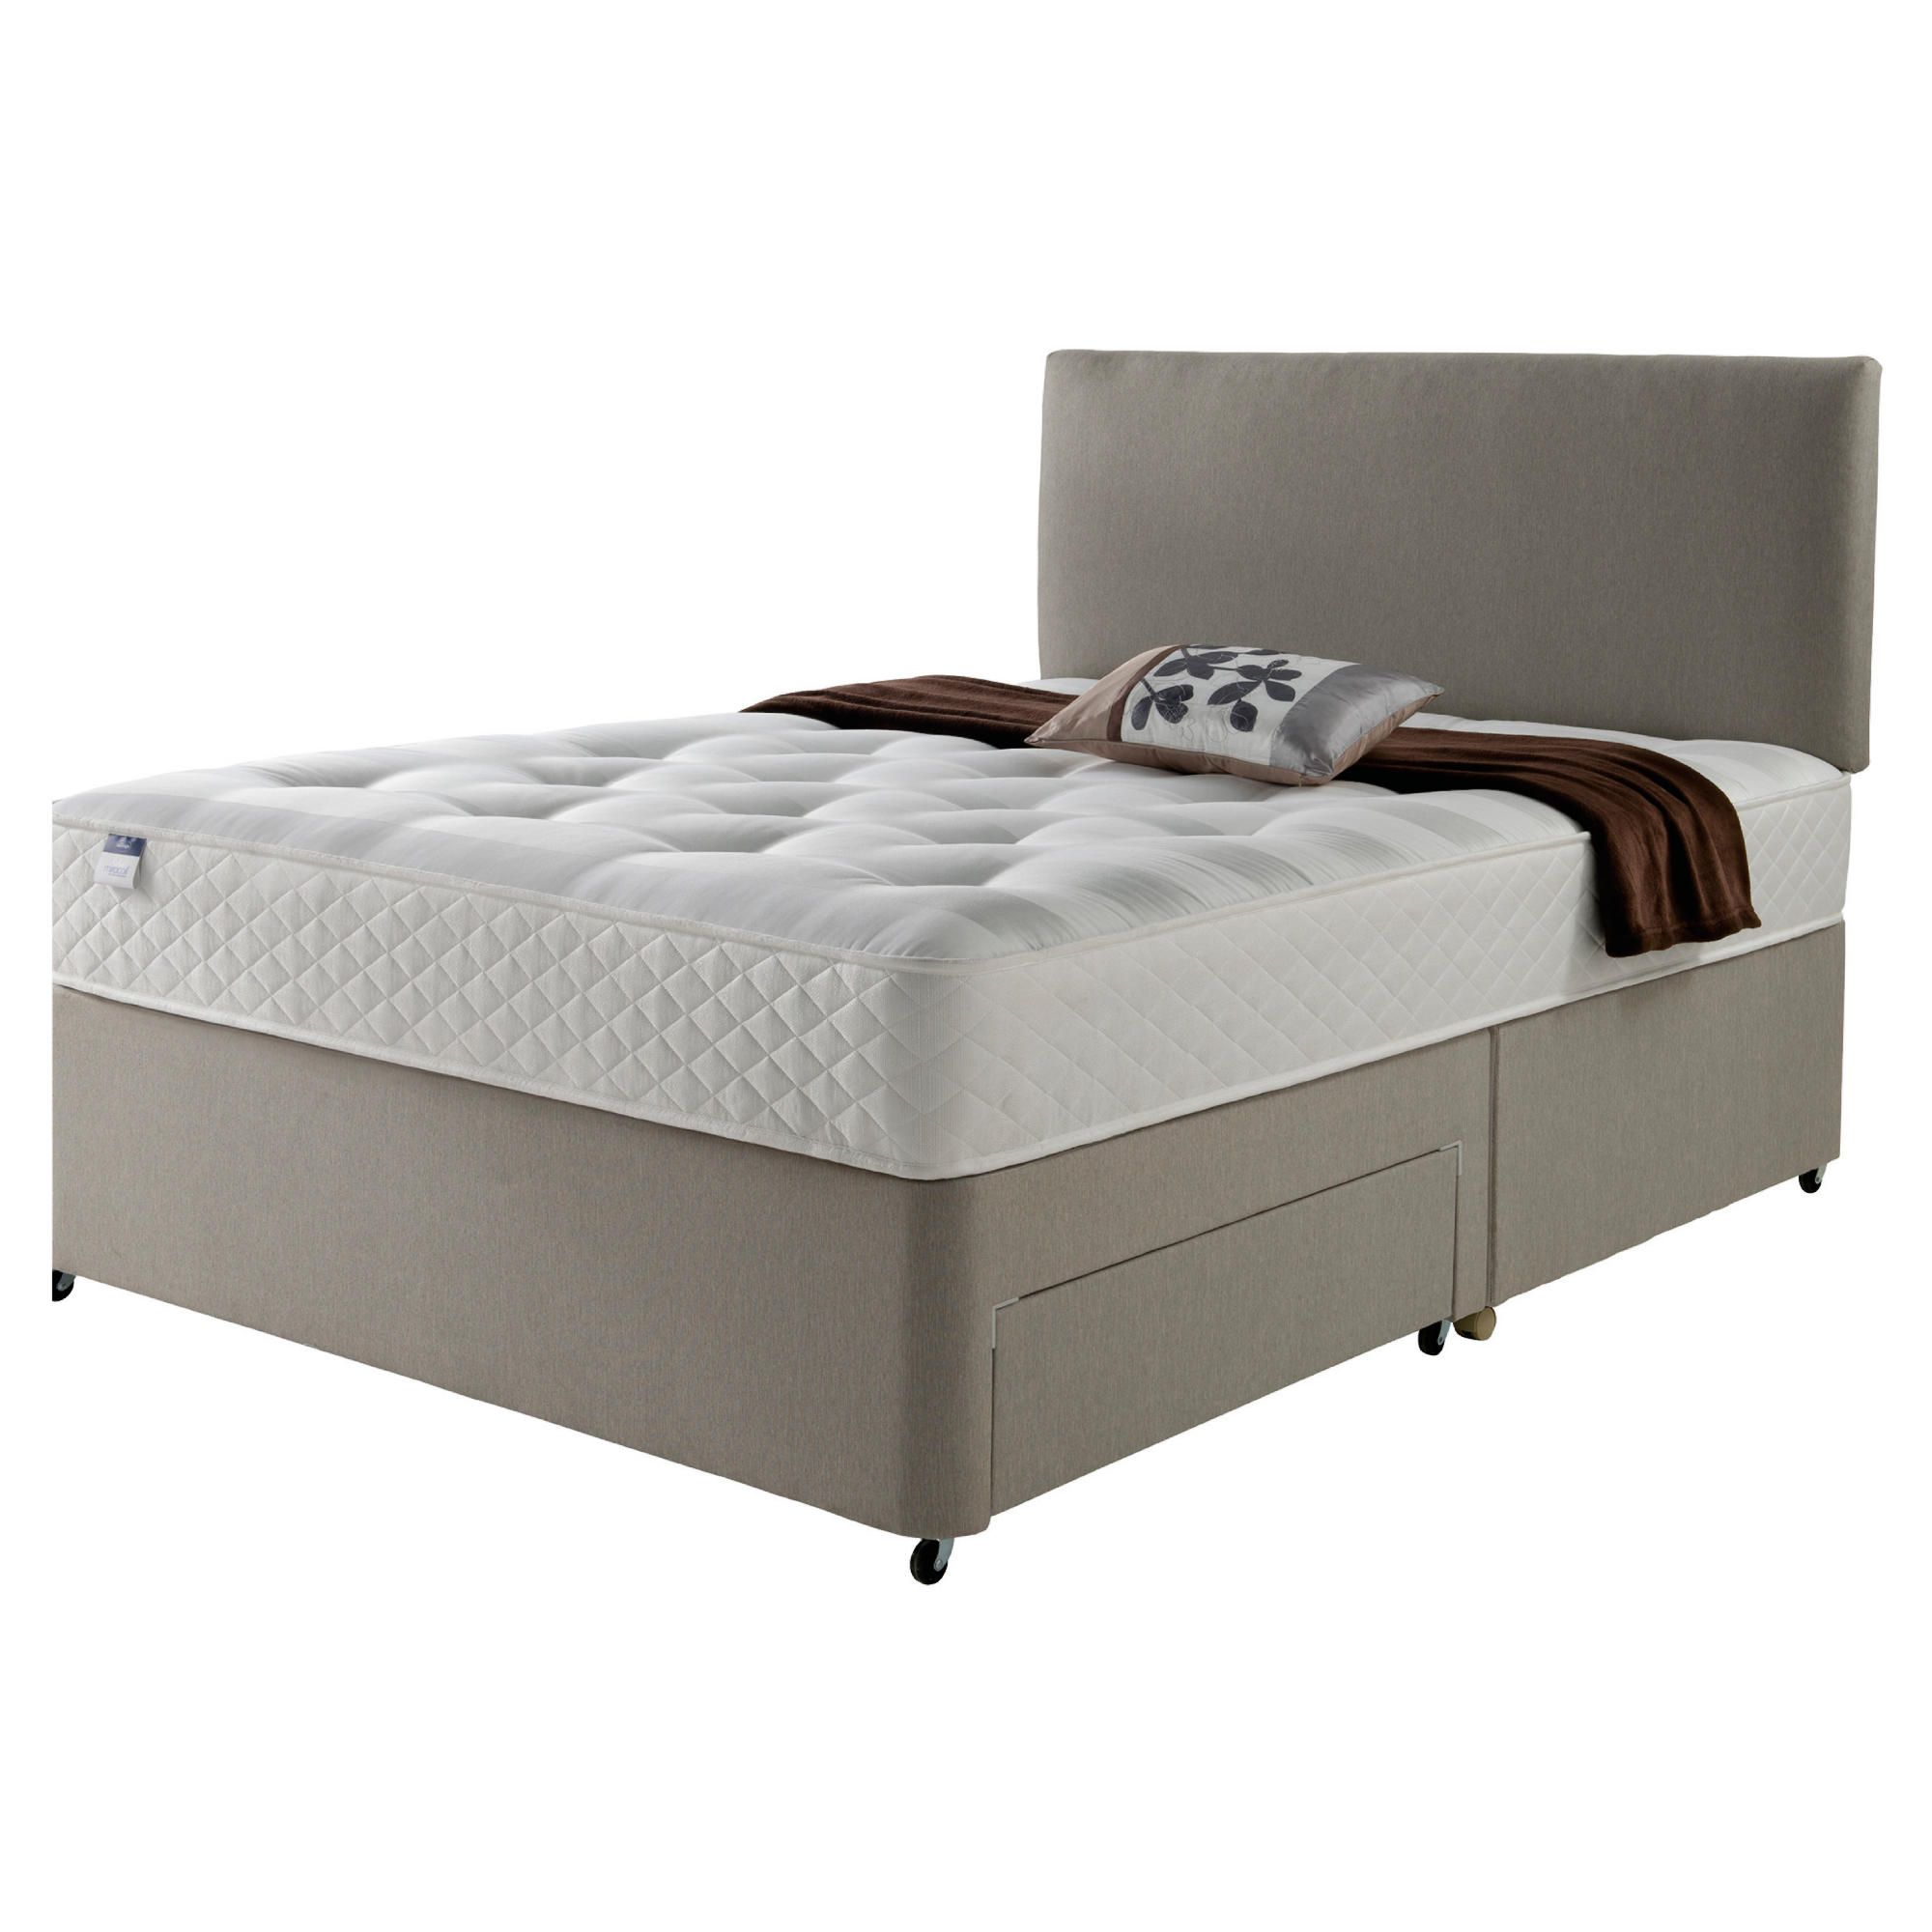 Silentnight Miracoil Luxury Ortho Tuft Non Storage Double Divan Mink with Headboard at Tesco Direct